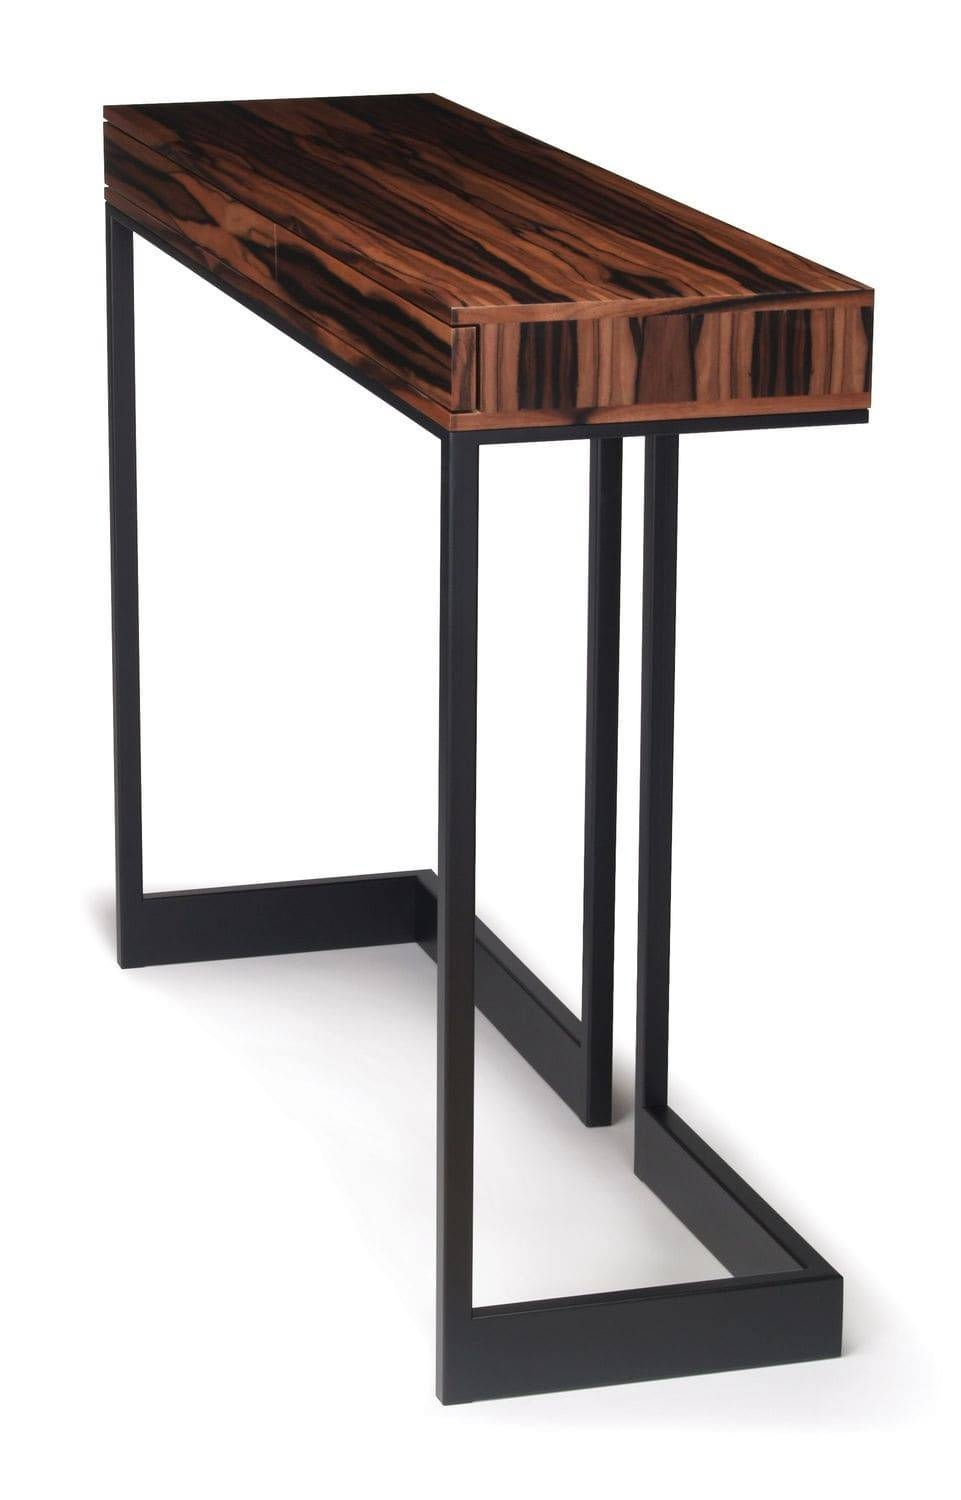 Contemporary Sideboard Table / Walnut / Beech / Ash – Wishbone With Regard To Latest Sideboard Tables (View 10 of 15)